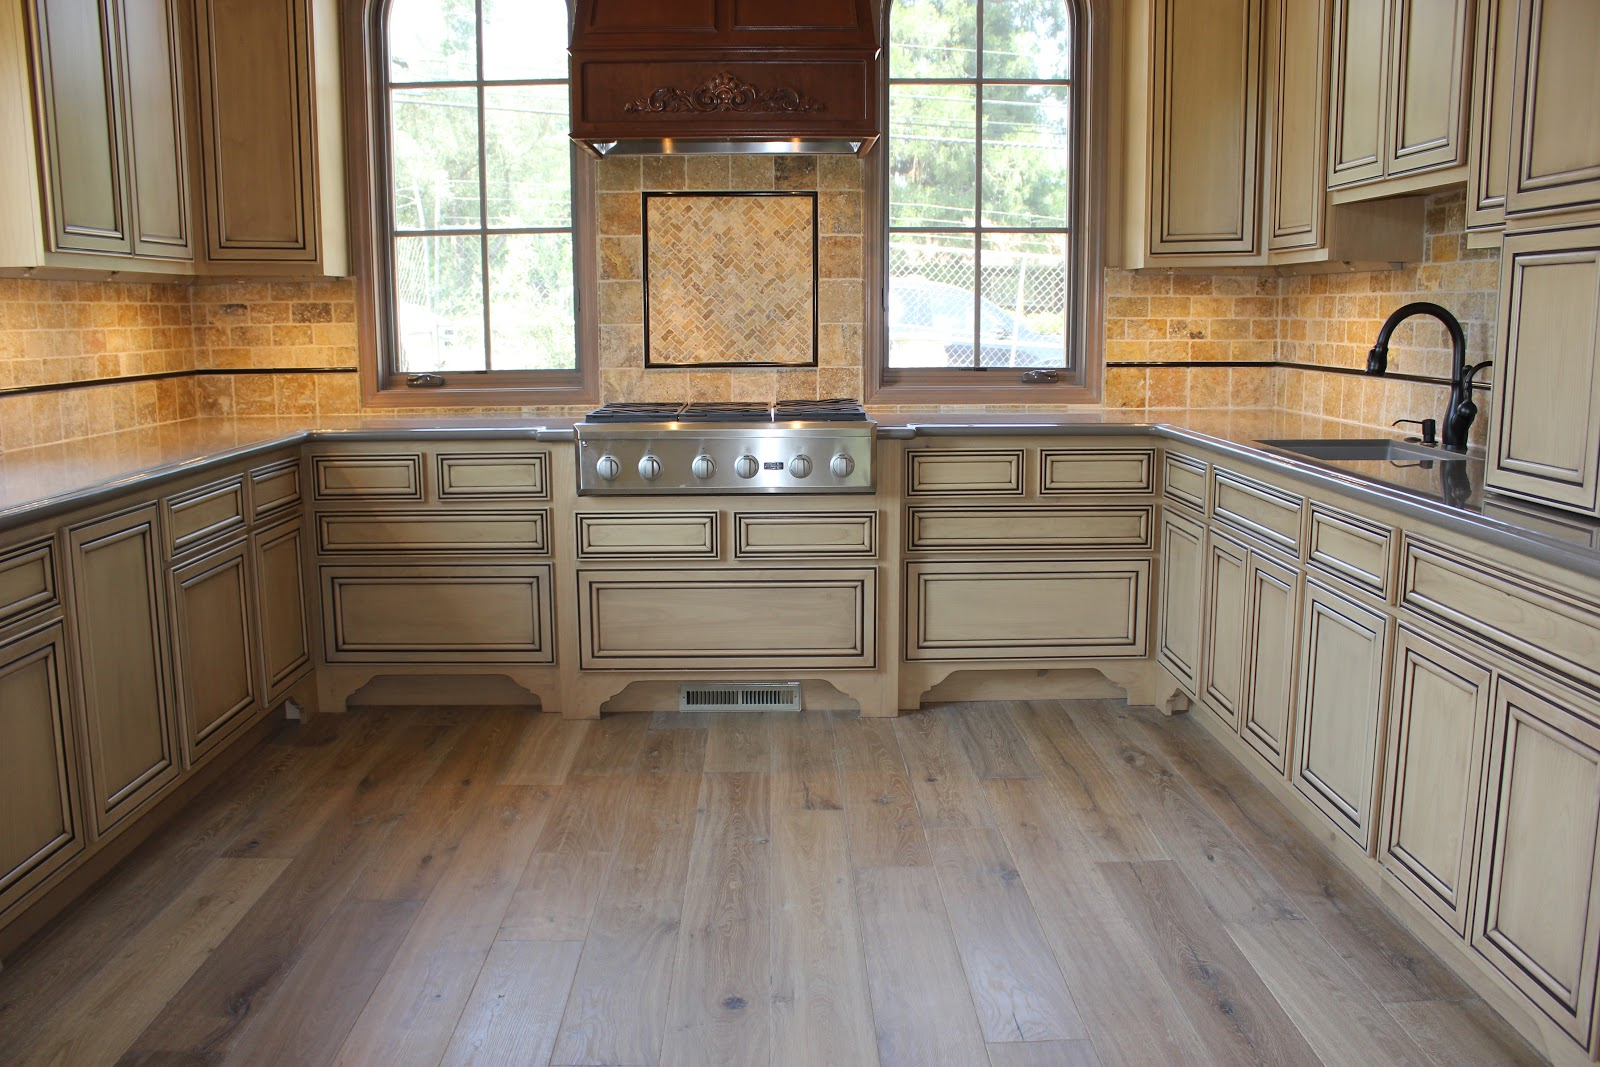 Floors For Kitchens Affordable Kitchen Cabinets Simas Floor And Design Company Hardwood Flooring By Royal Oak